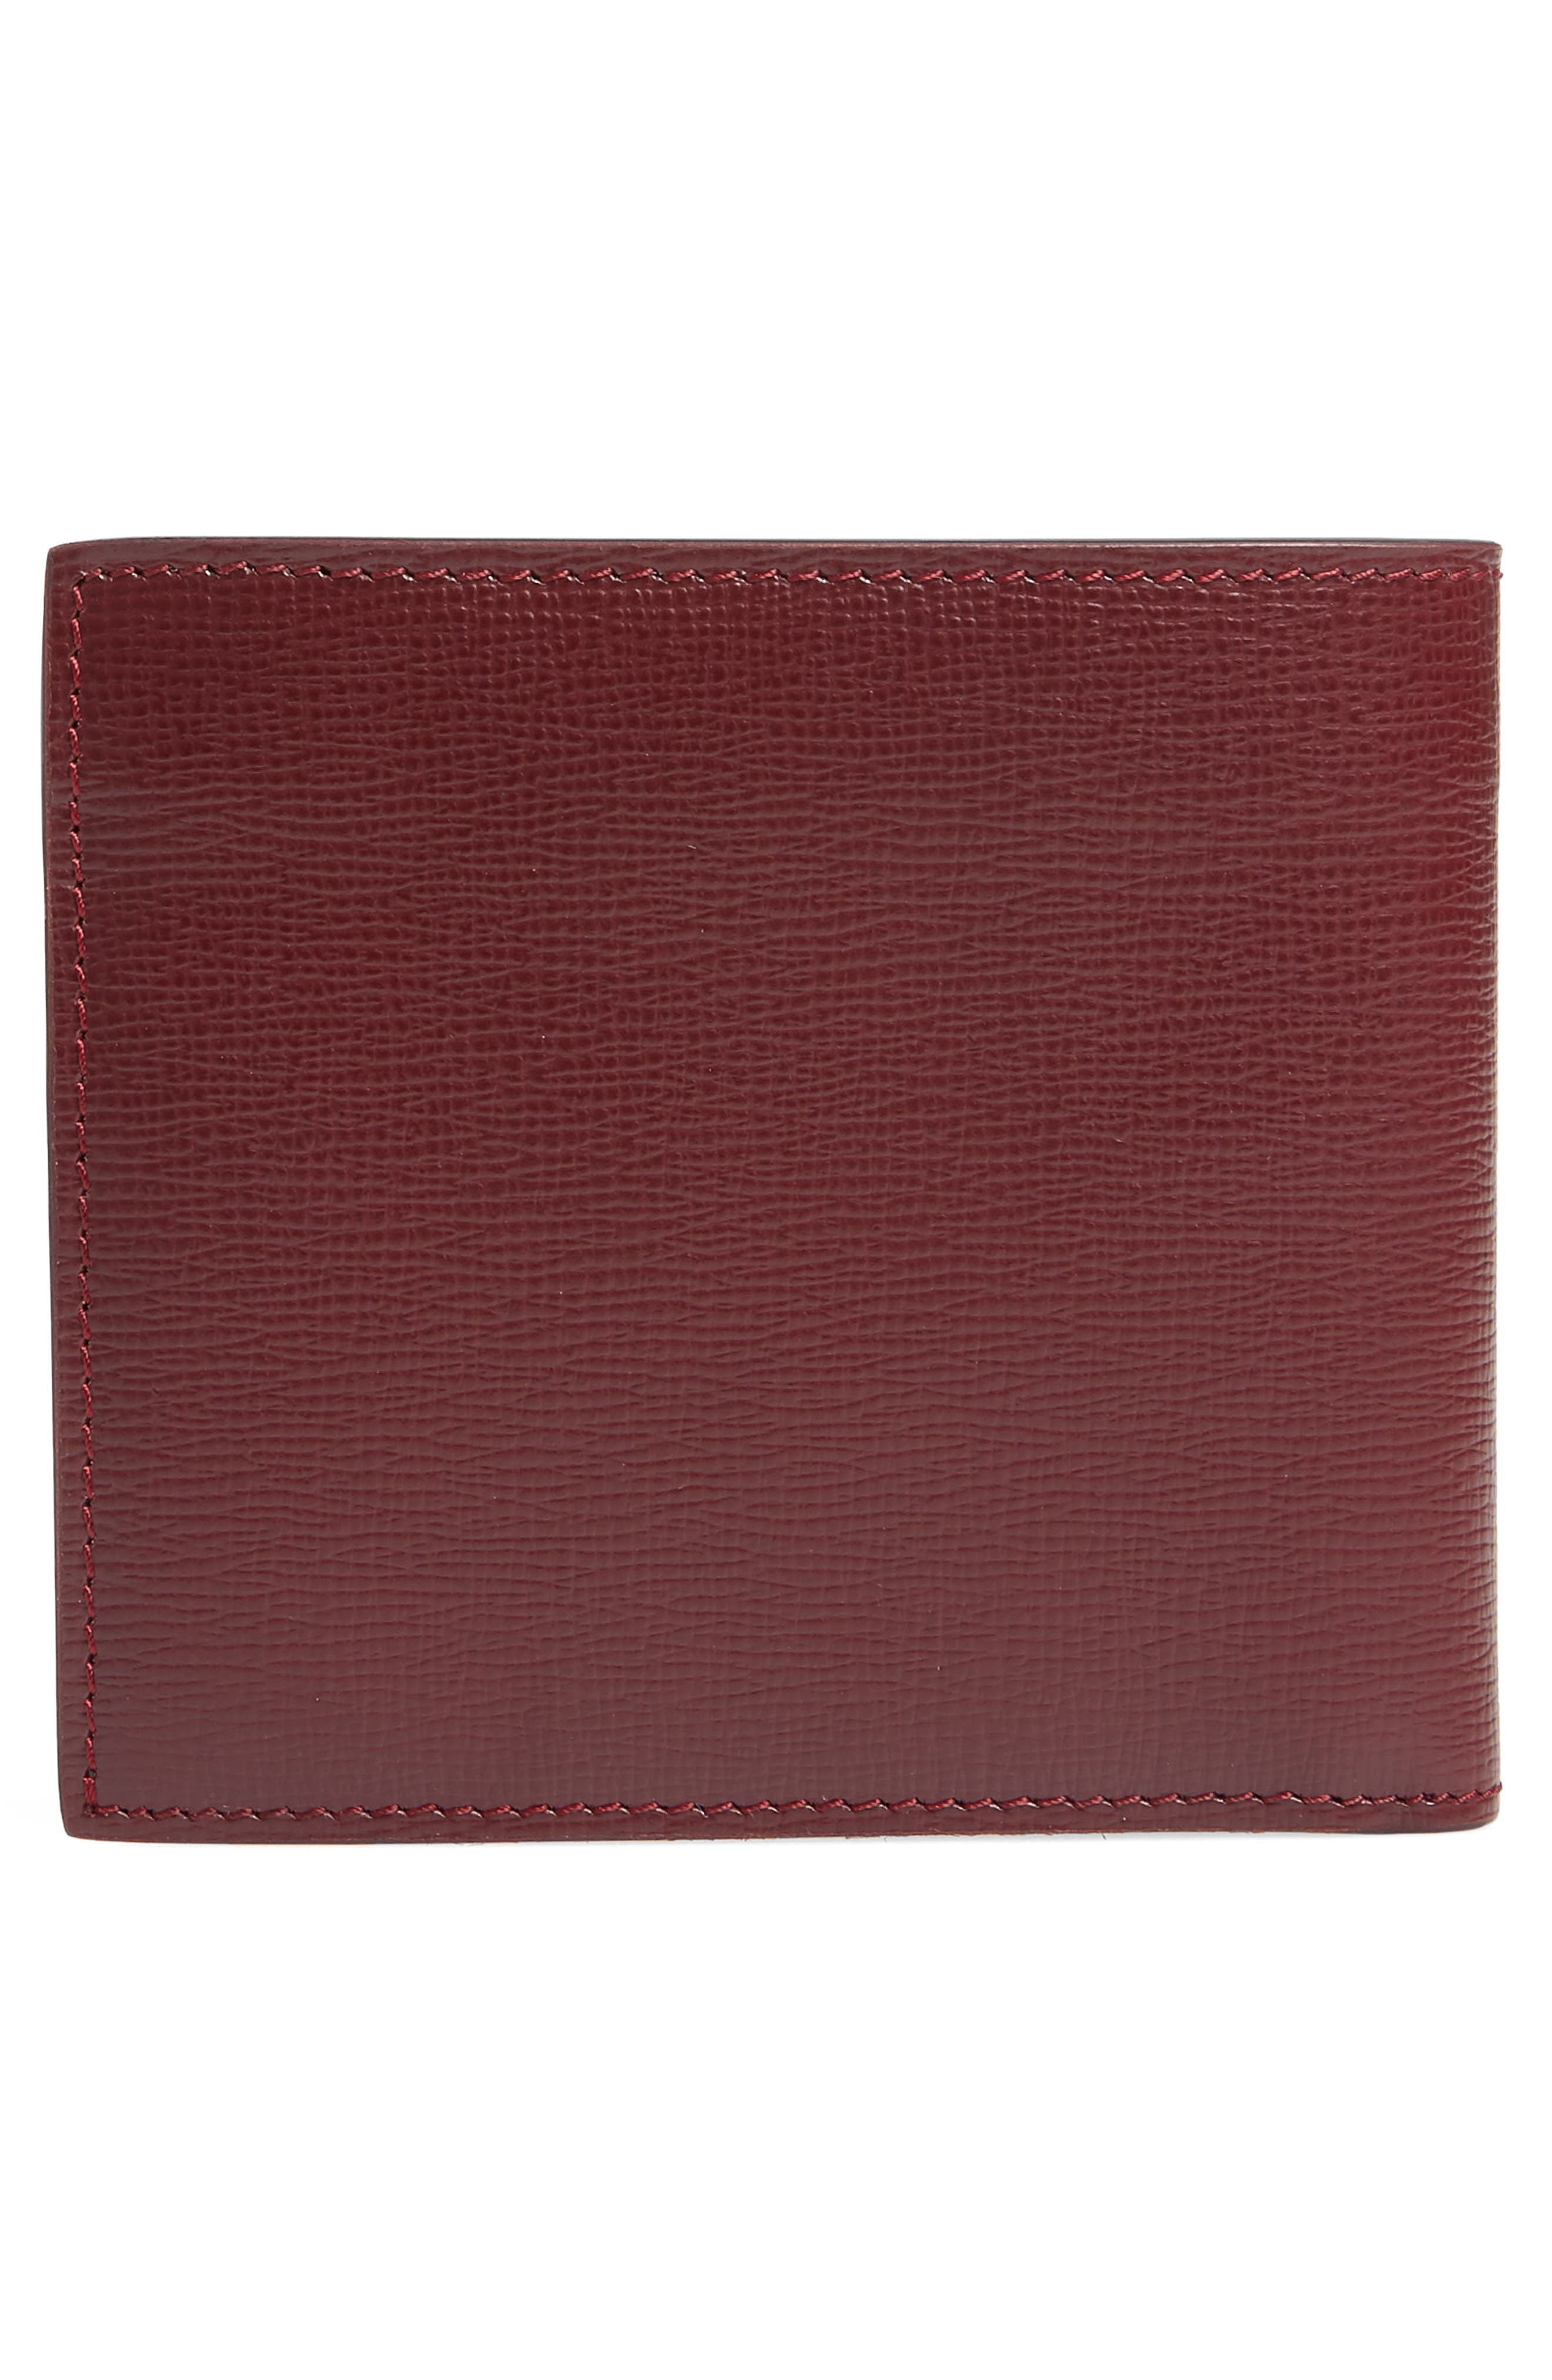 Leather Bifold Wallet,                             Alternate thumbnail 3, color,                             Burgundy Red